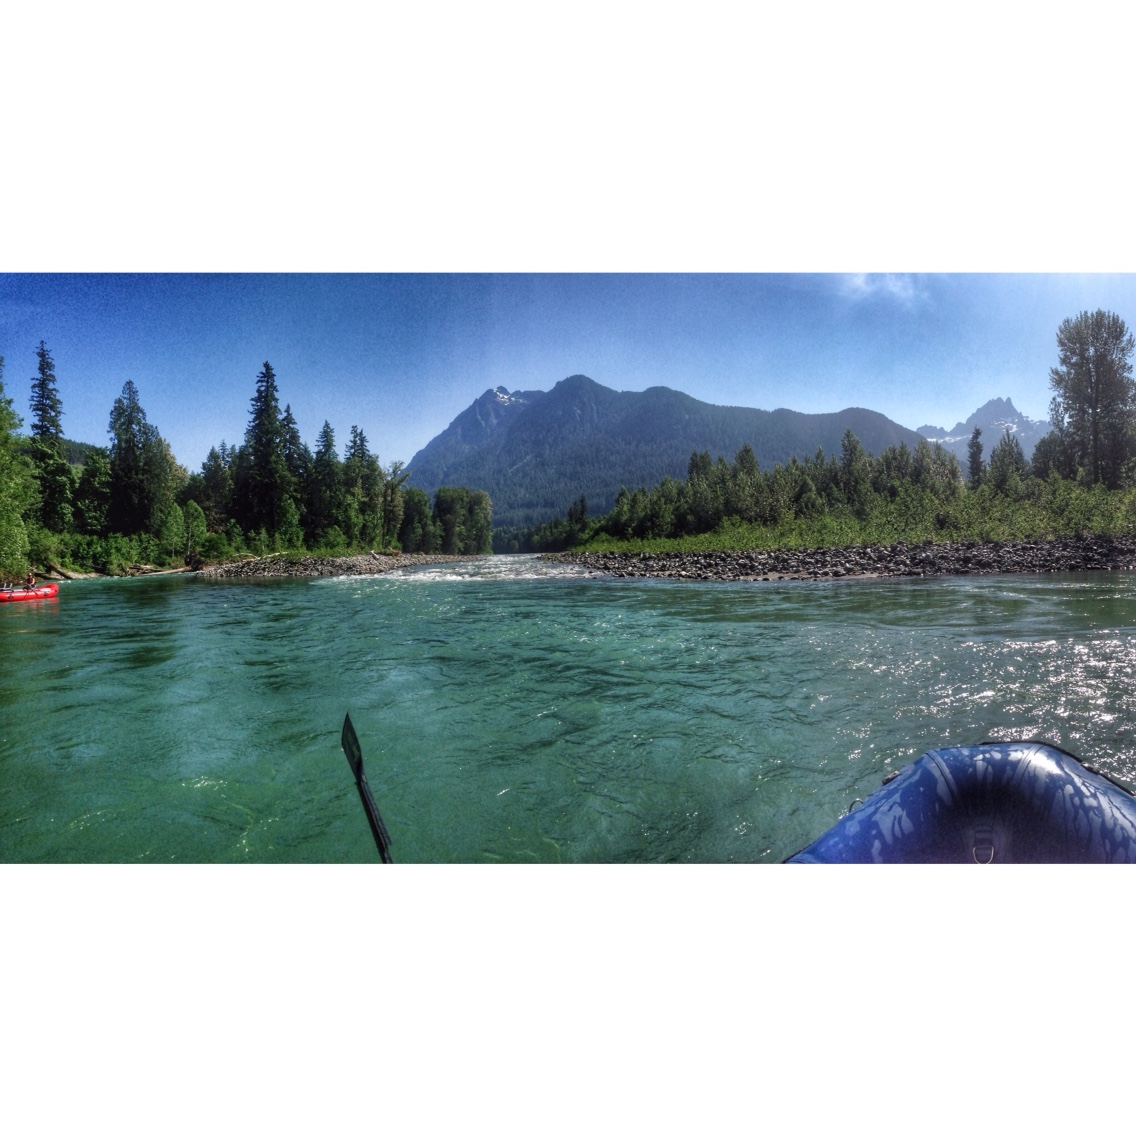 Pictures shows the front of a raft heading down the Sauk River with a group of mountains in the background.